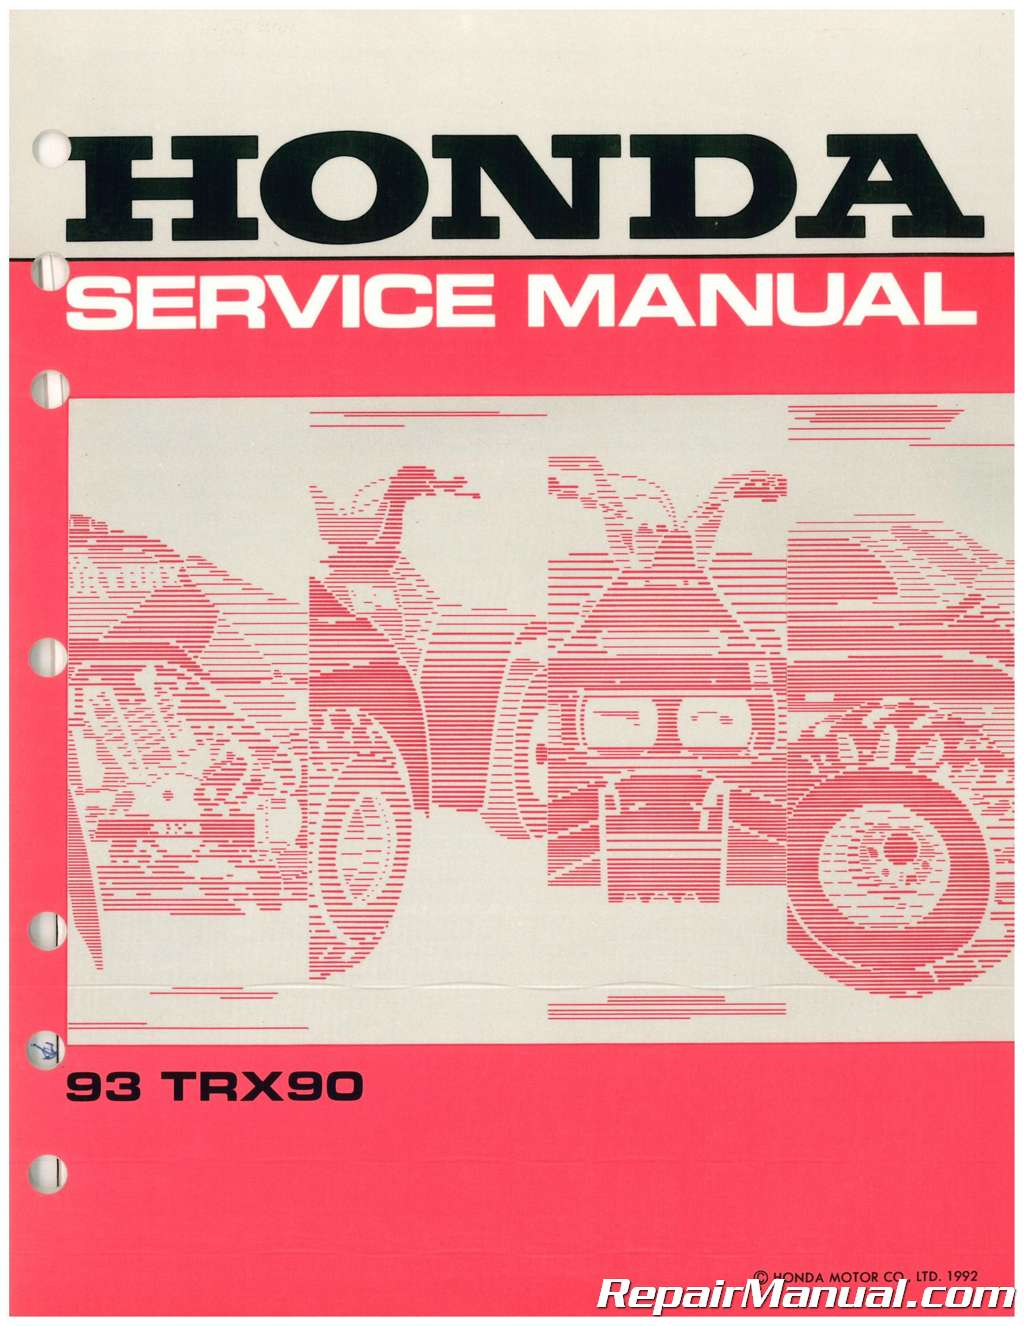 Honda TRX 90 Manual